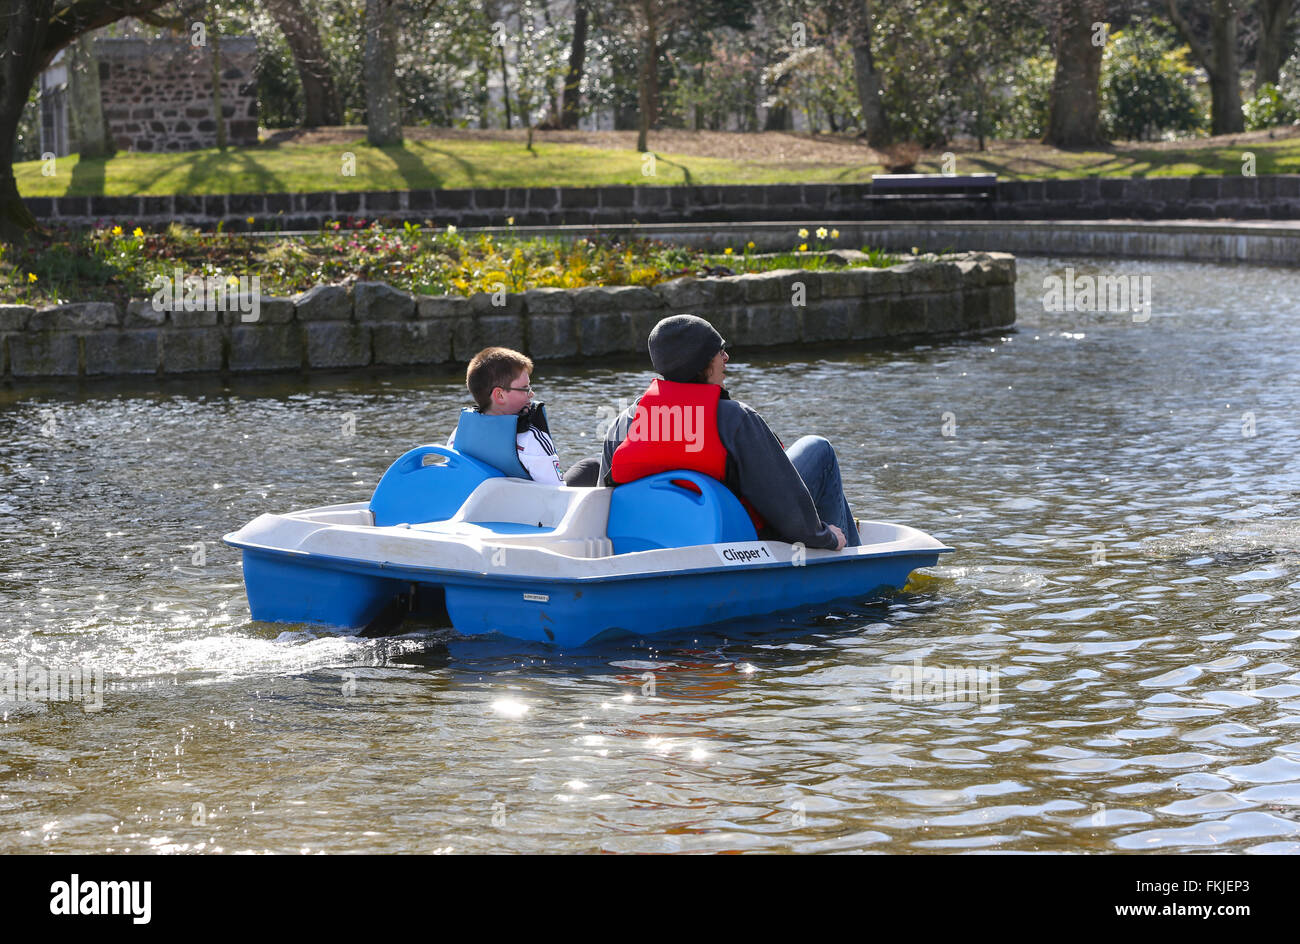 People enjoying a pedalo on the boating pond in Duthie Park, Aberdeen, Scotland, UK - Stock Image